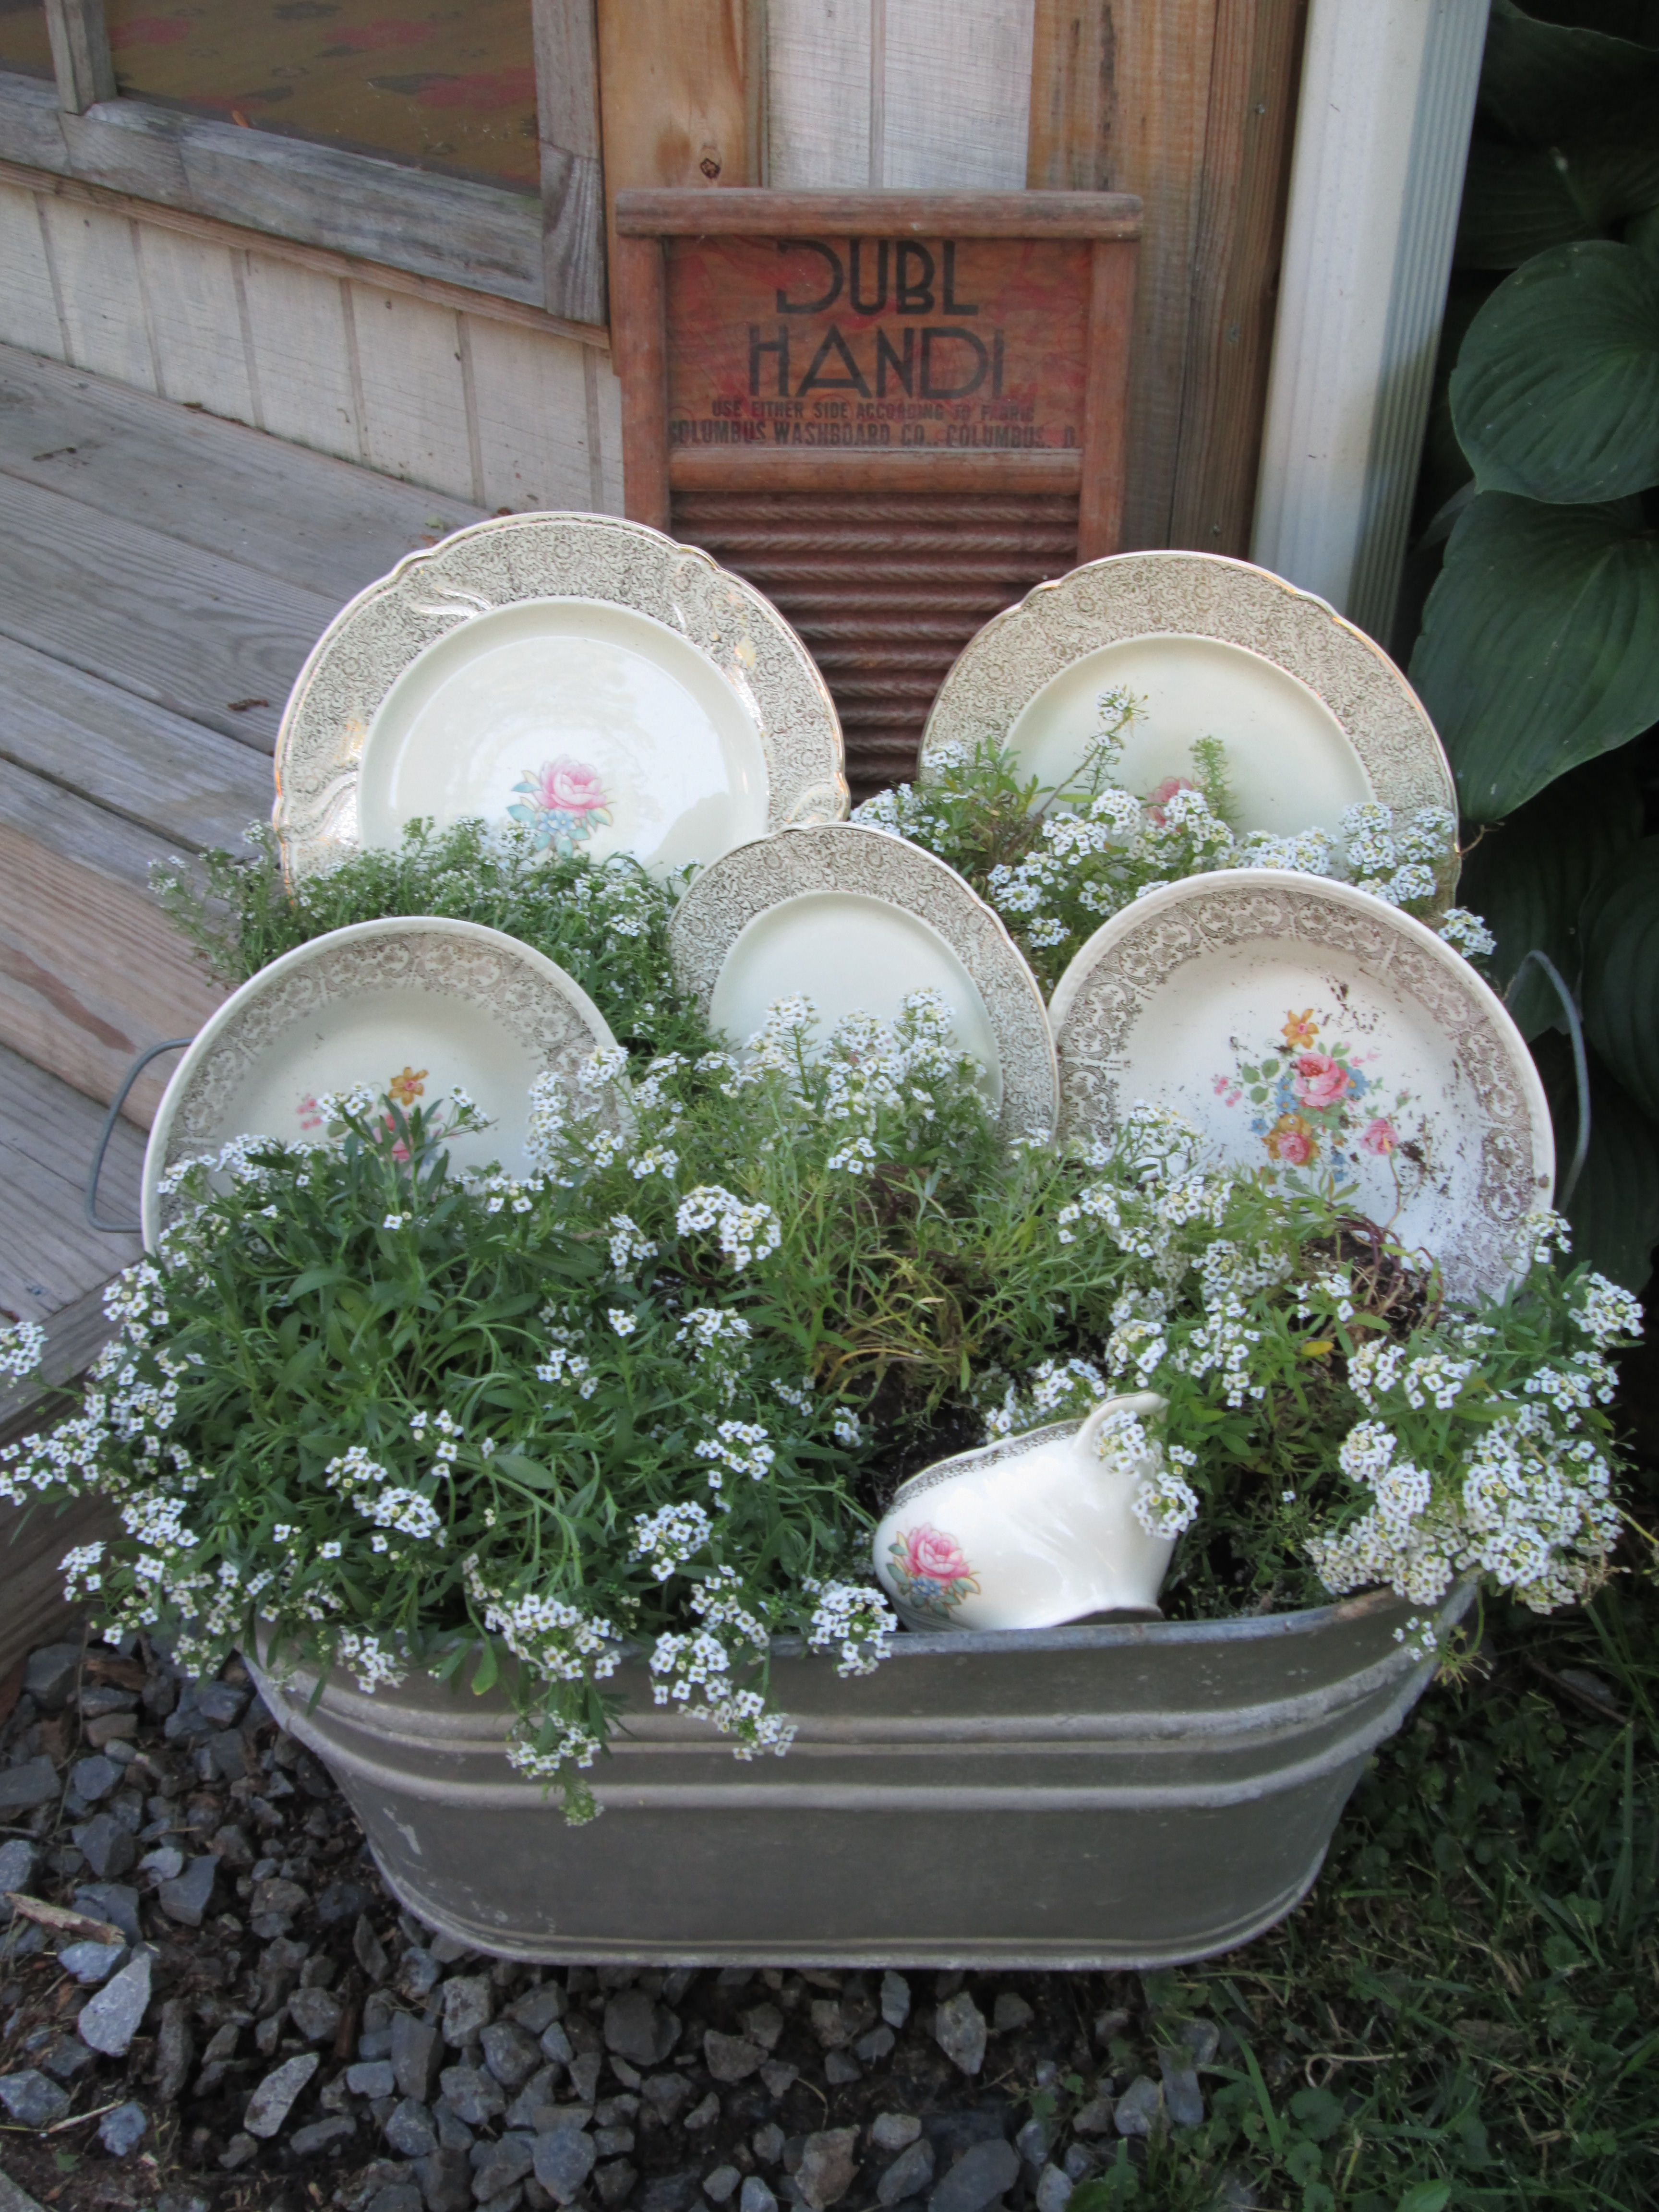 Vintage Wash Tub Flower Arrangement Just Put This Together Last Night So Easy Container Herb Garden Flower Arrangements Garden Containers